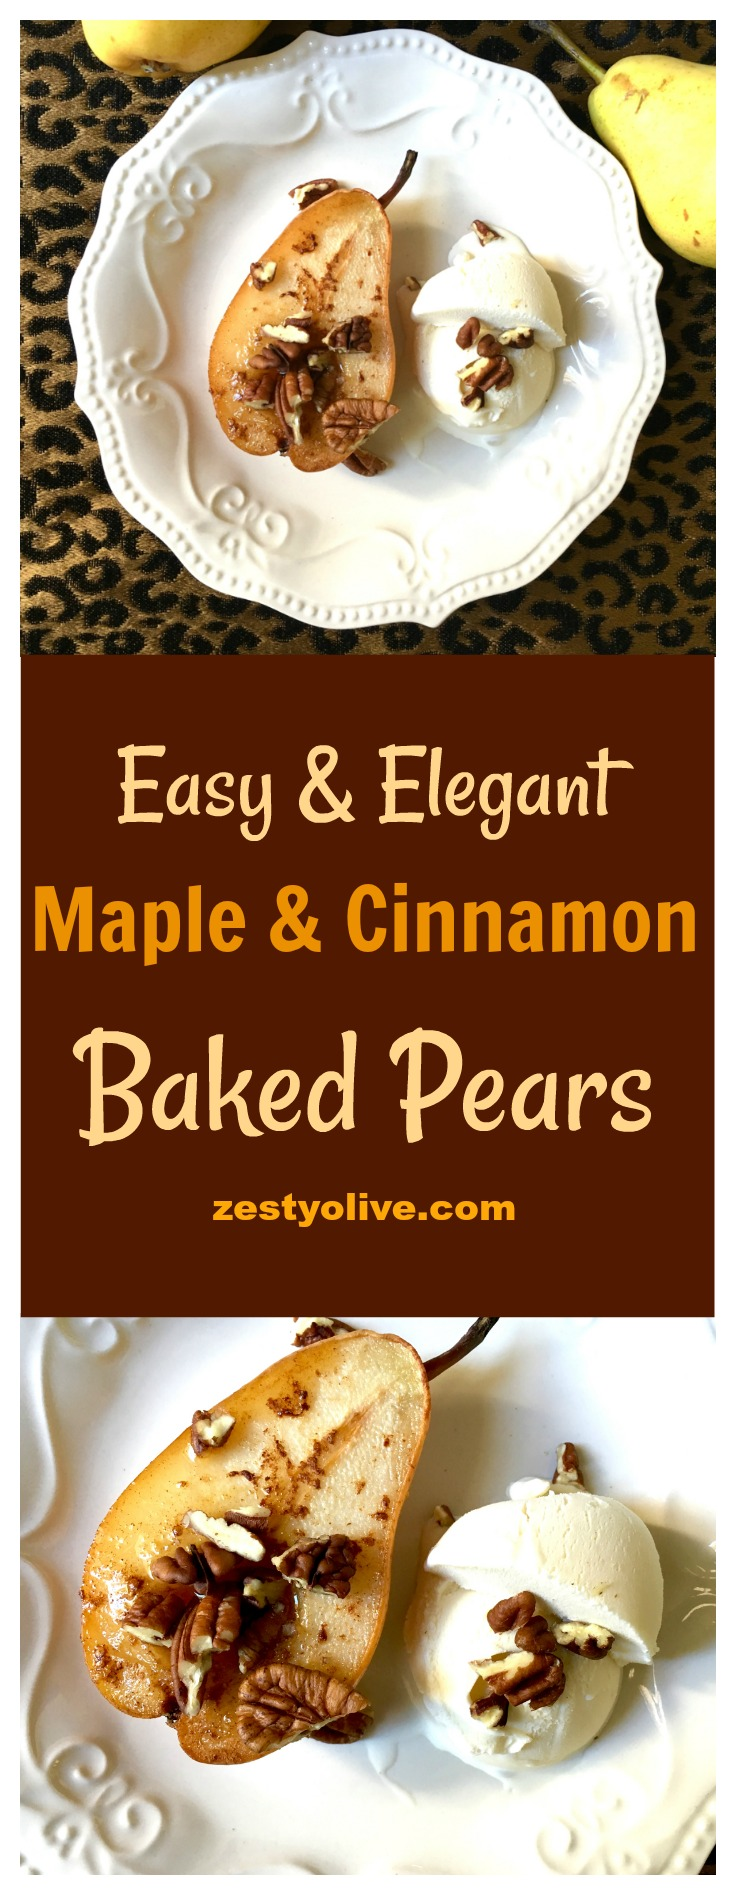 Maple and Cinnamon Baked Pears